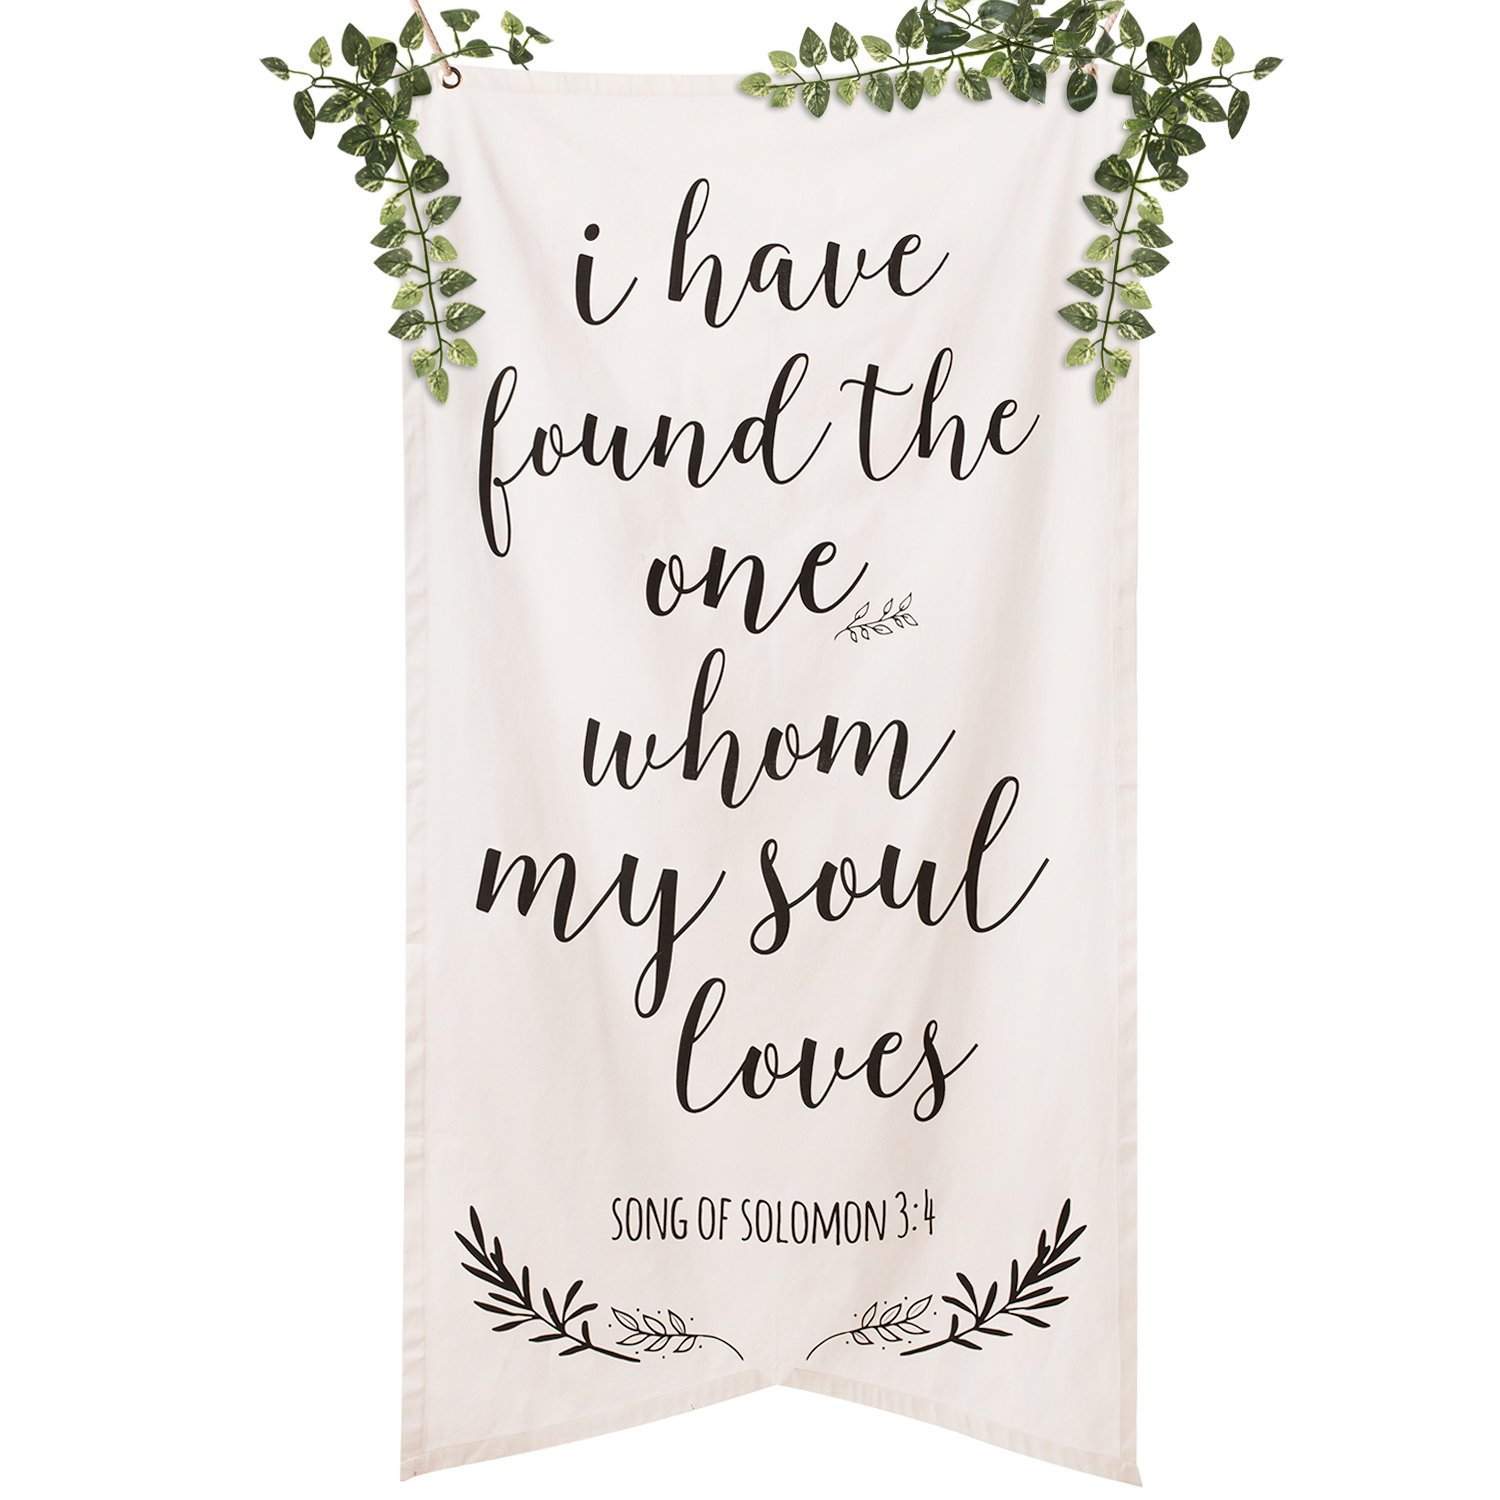 Ling'smomentSpring Garden WeddingSignage Cotton CanvasOversizedPennantBannerCalligraphy Ceremony BackdropReligious''Ihavefoundtheonewhommysoulloves''QuoteBibleVerse by Ling's moment